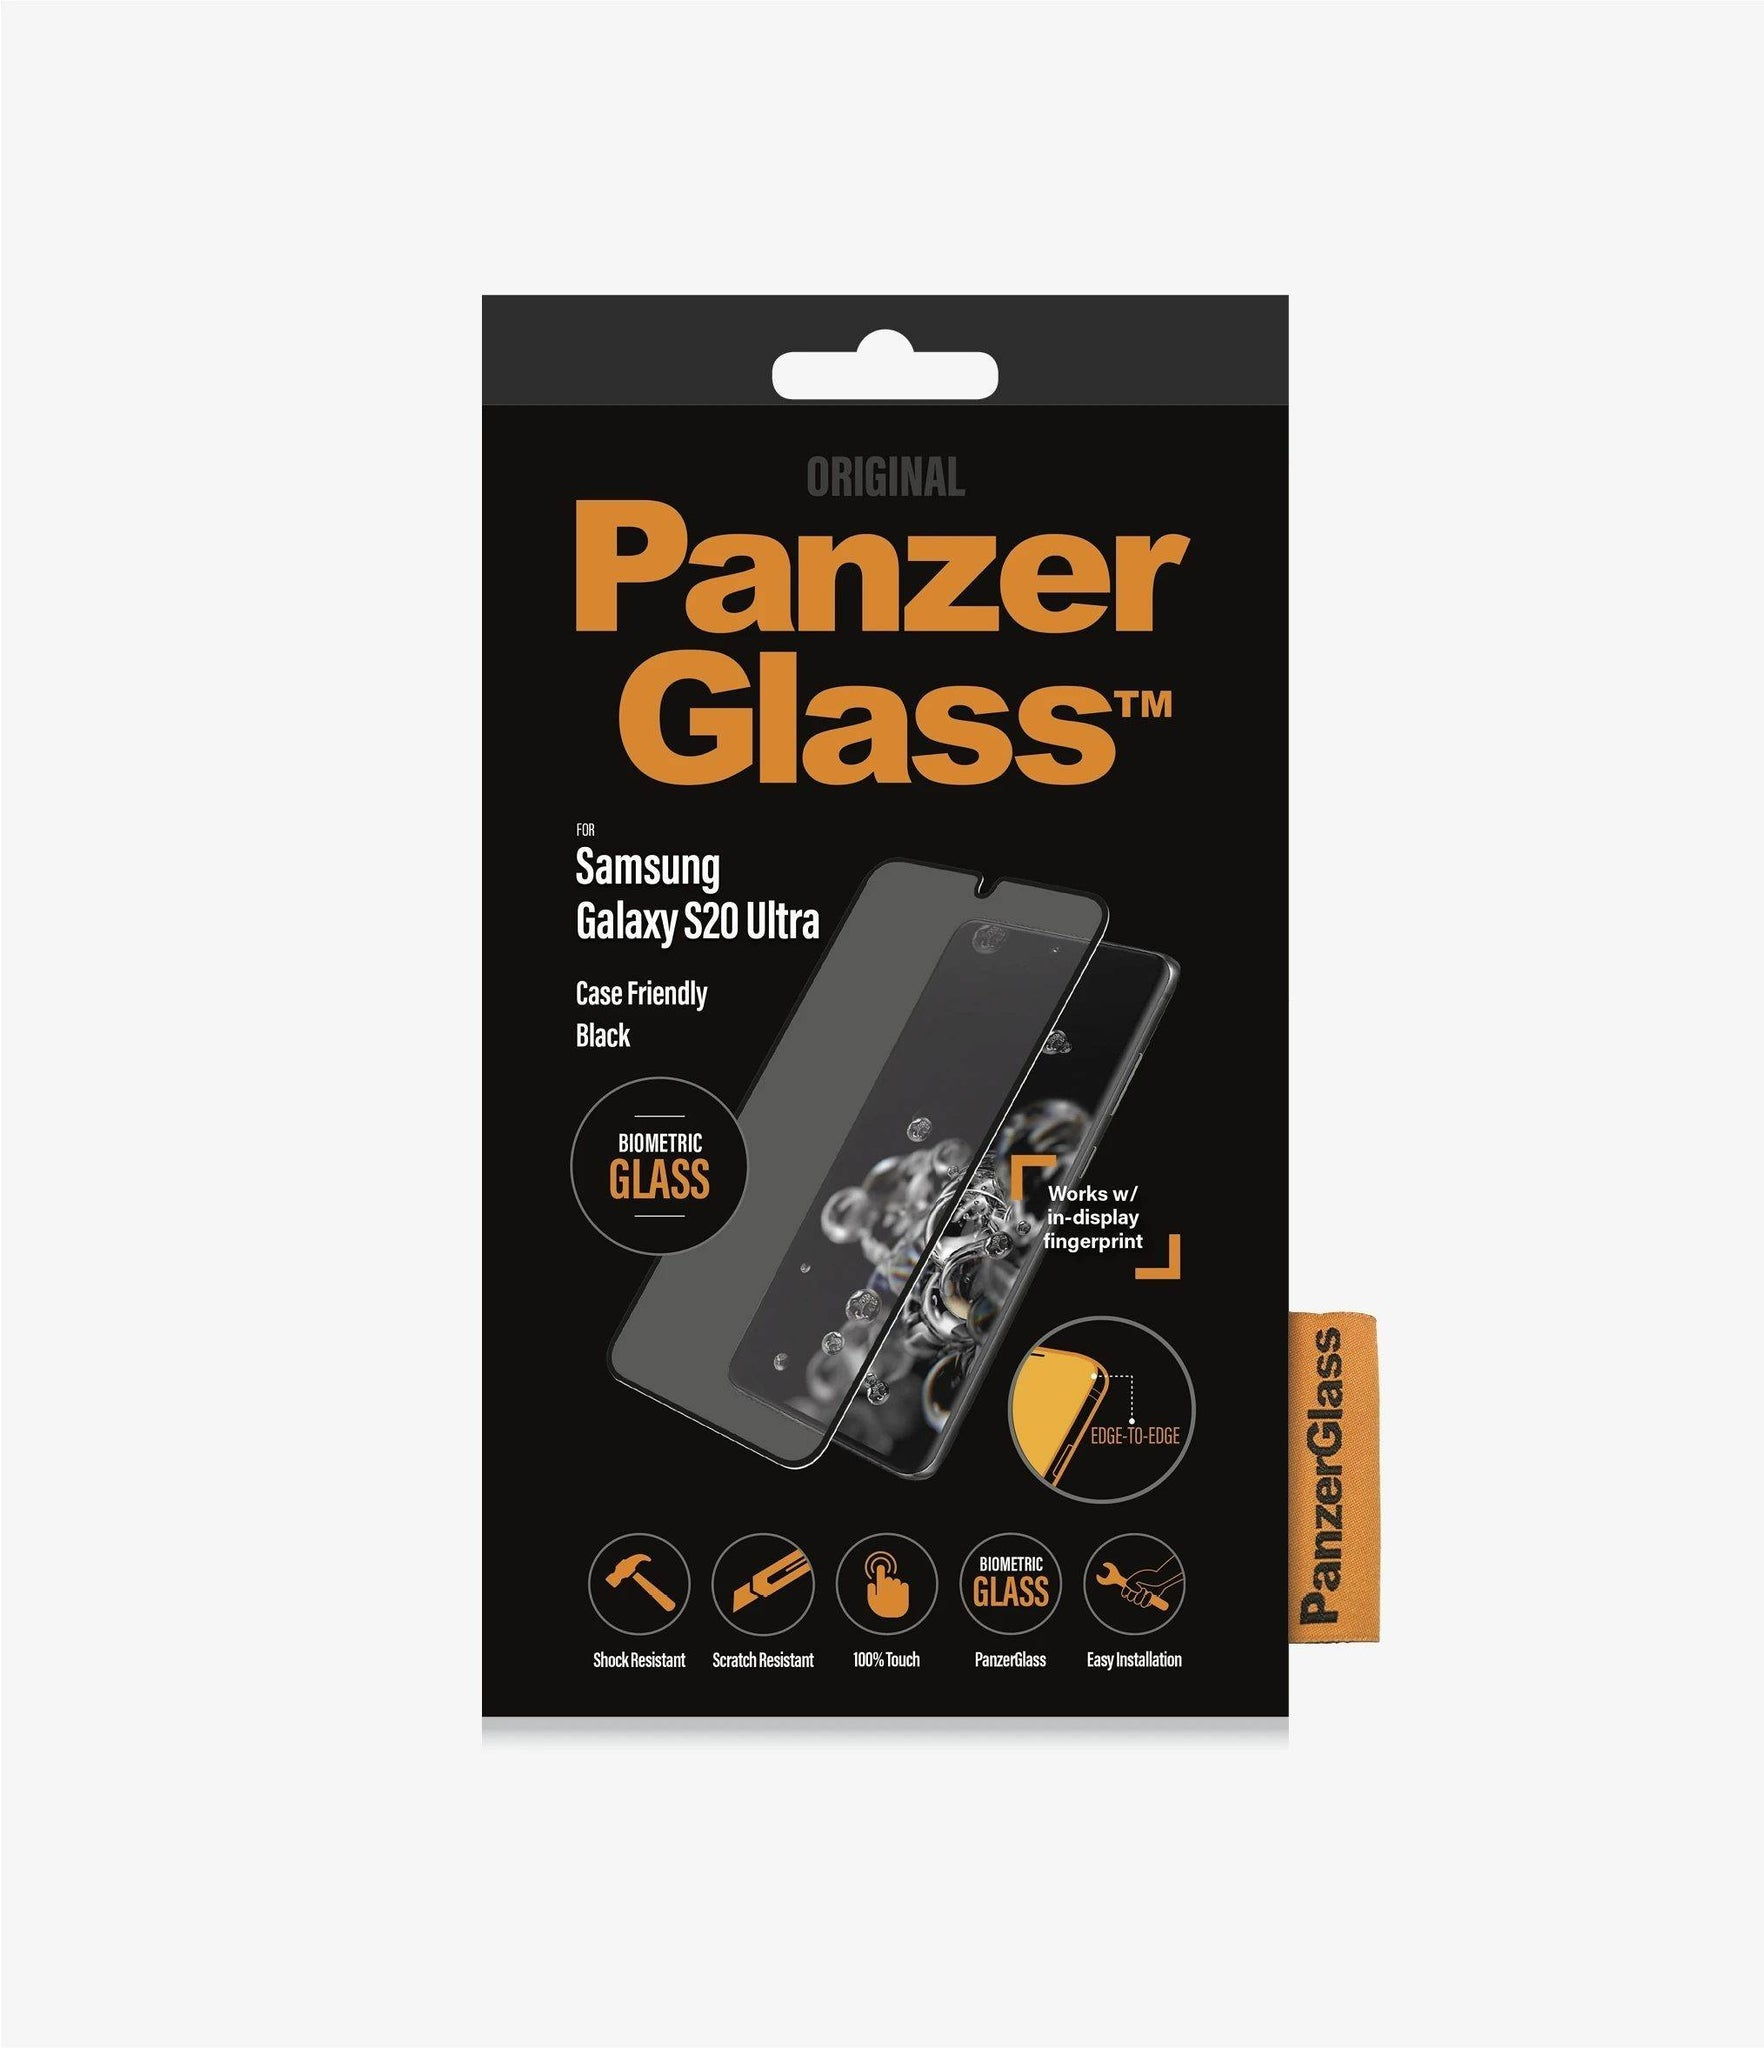 PanzerGlass - Samsung Galaxy S20 Ultra Screen Protector Biometric with Finger Prints - Black, PNZ7224 - 2071MALL